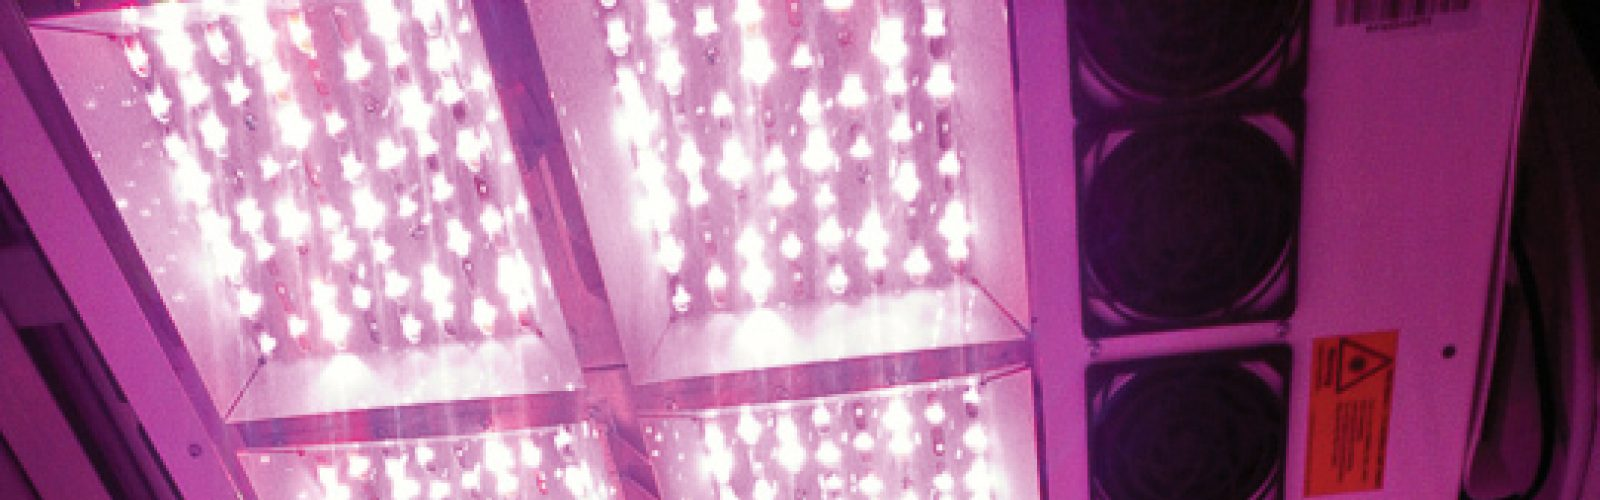 anu-heliospectra-leds-growth-cabinet 1